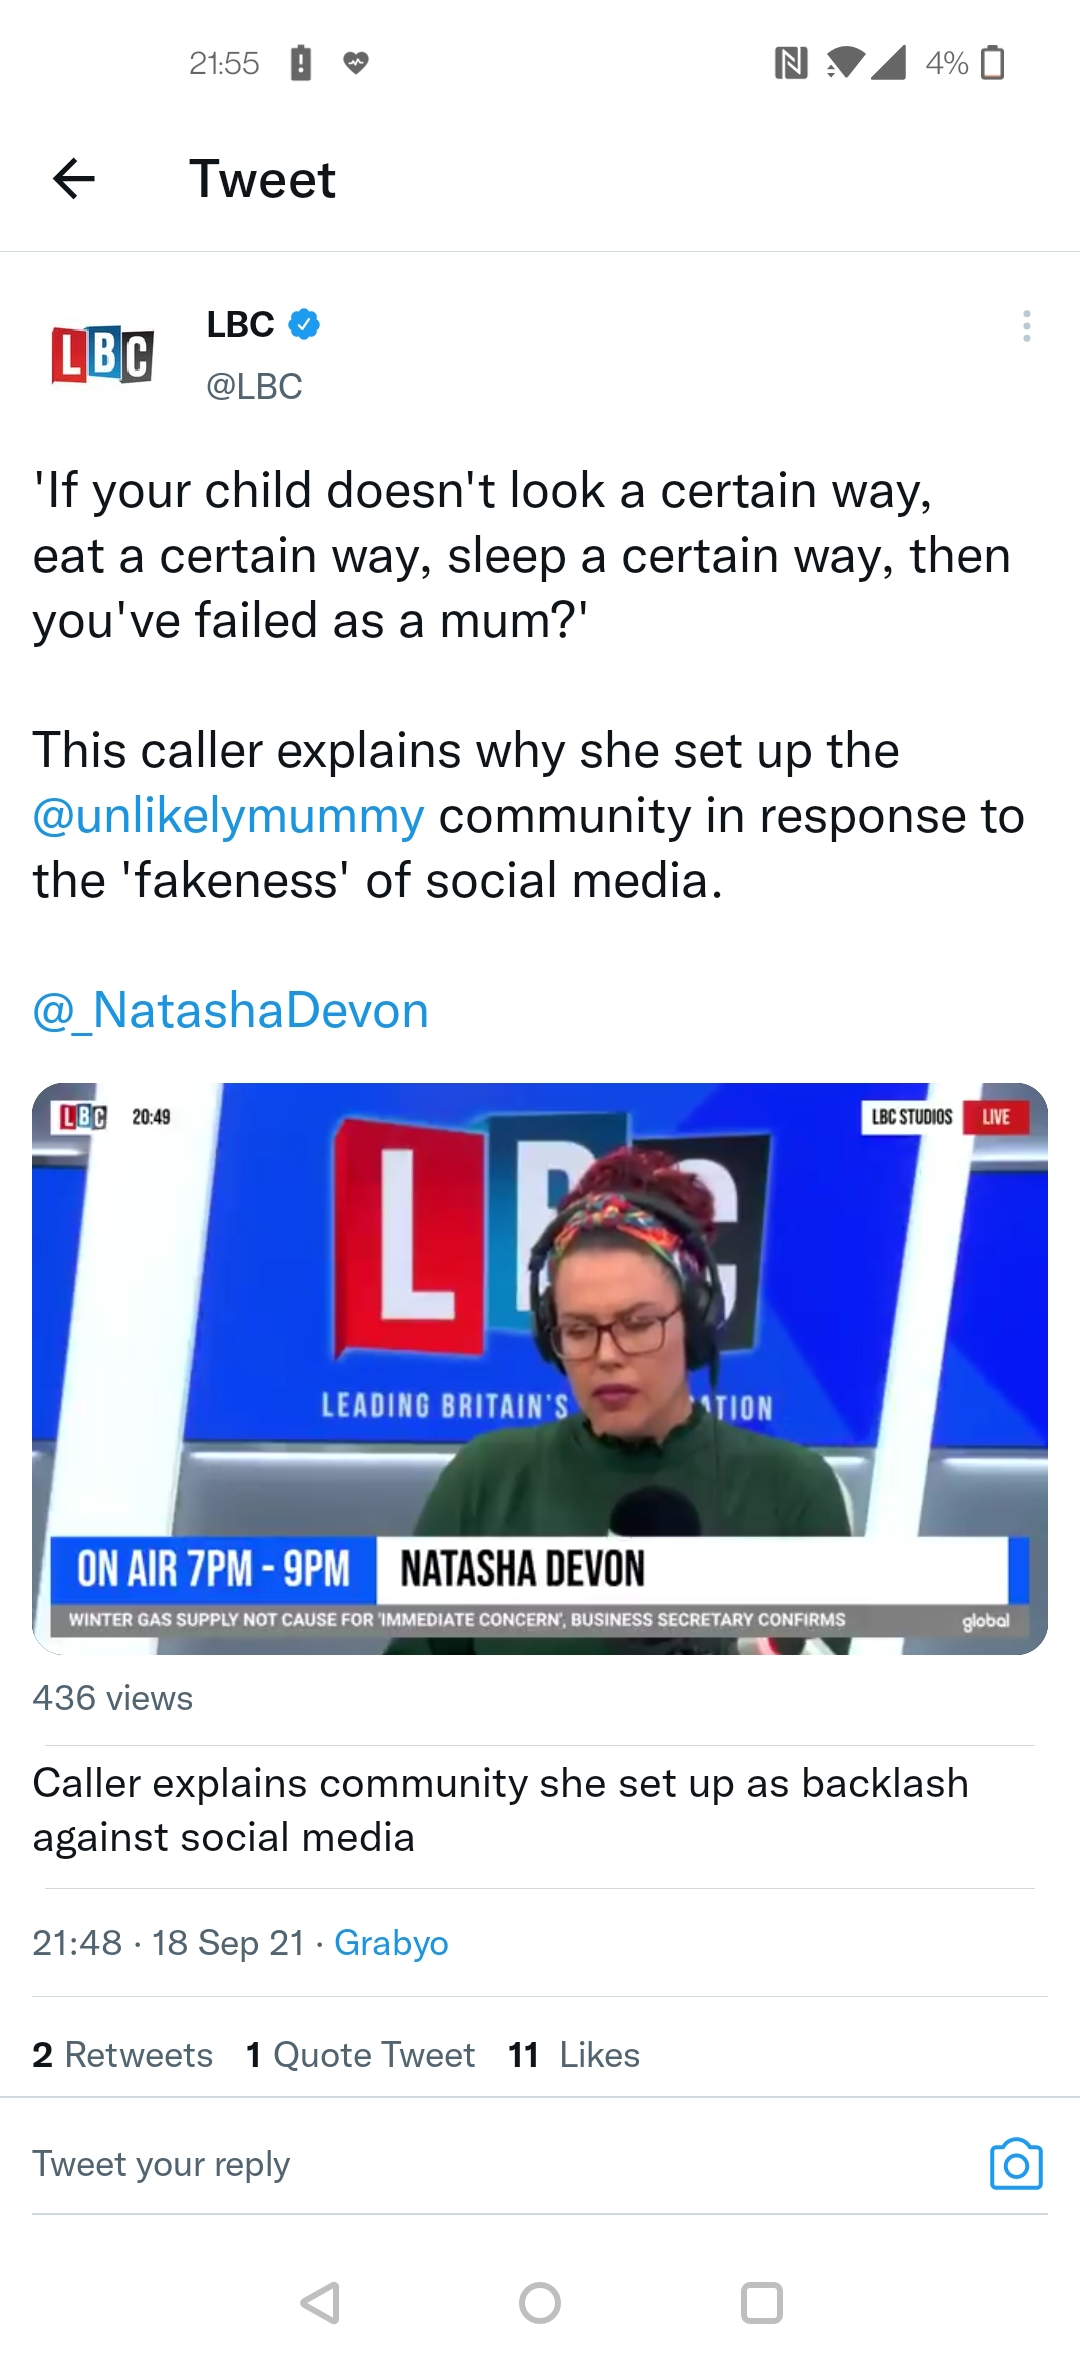 It's all about LBC, Mental Health and Social Media